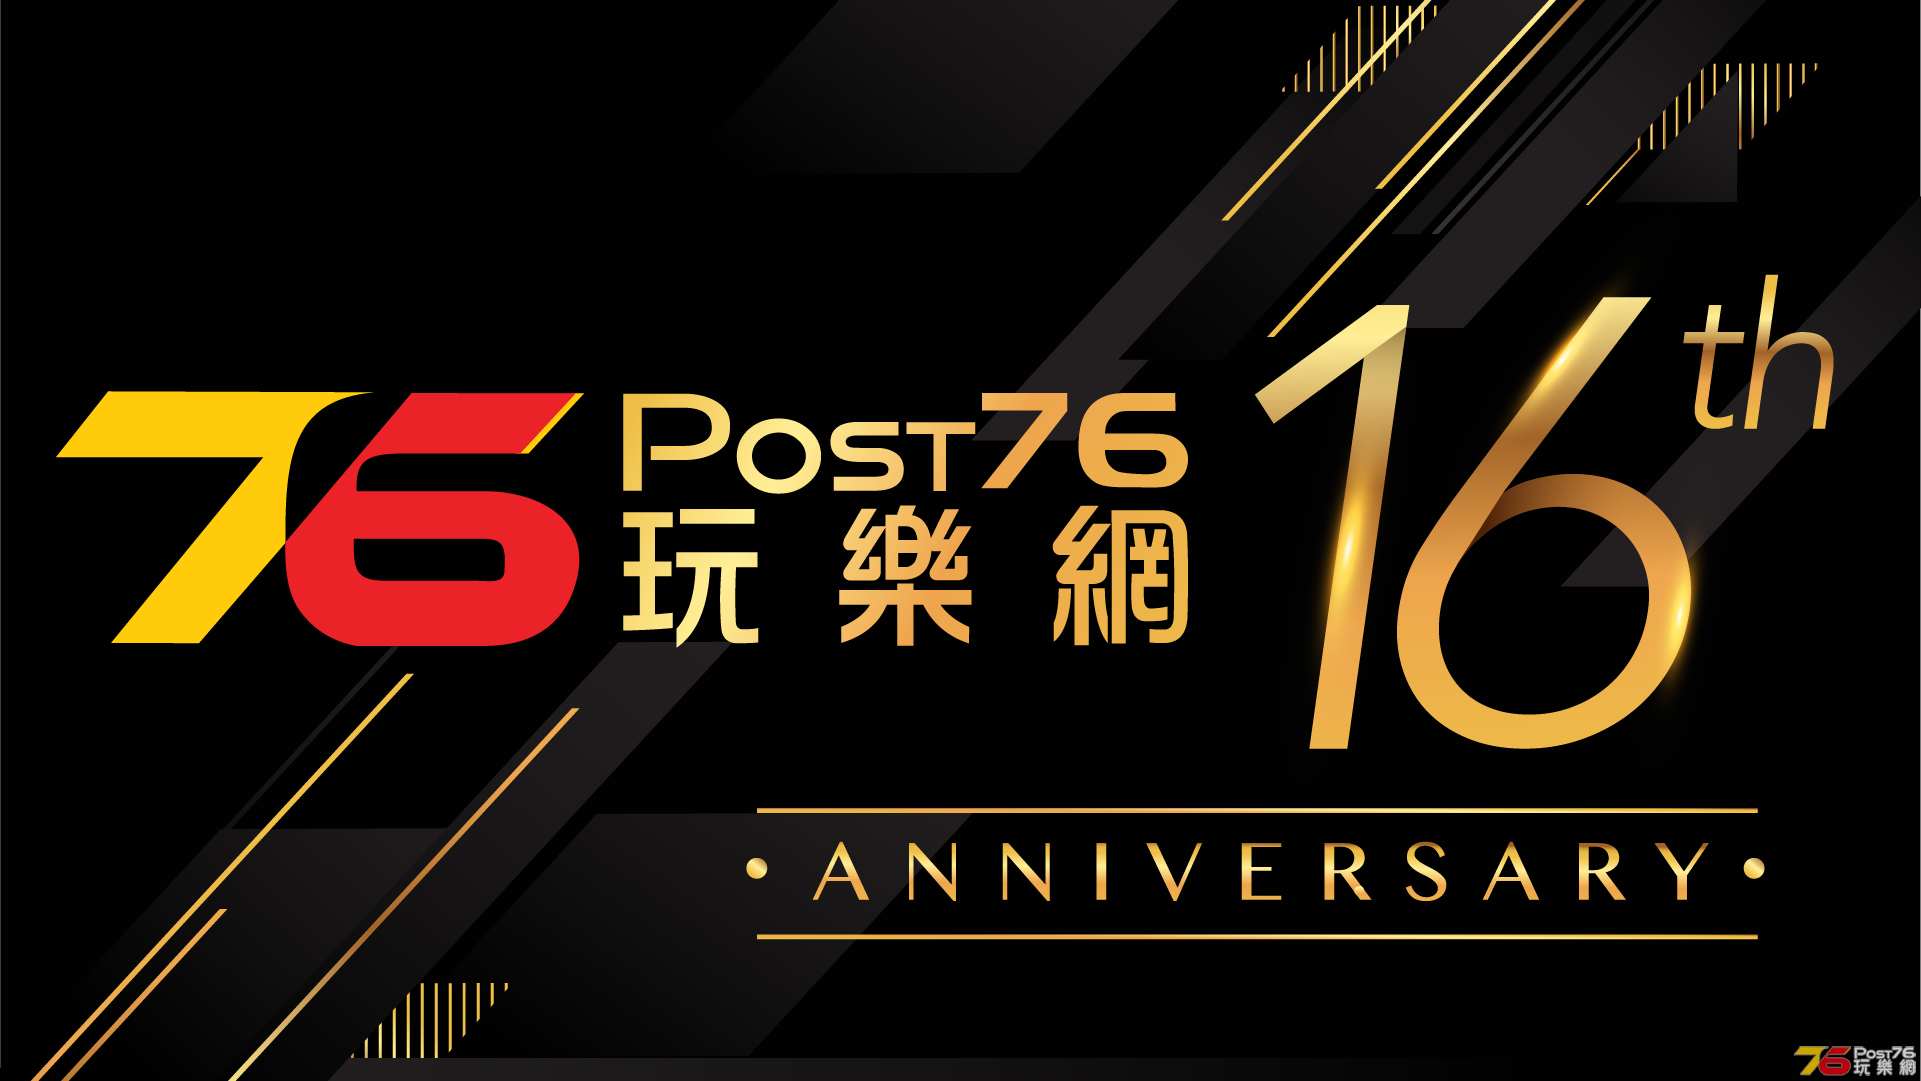 post76_16th_logo_AICS5.png